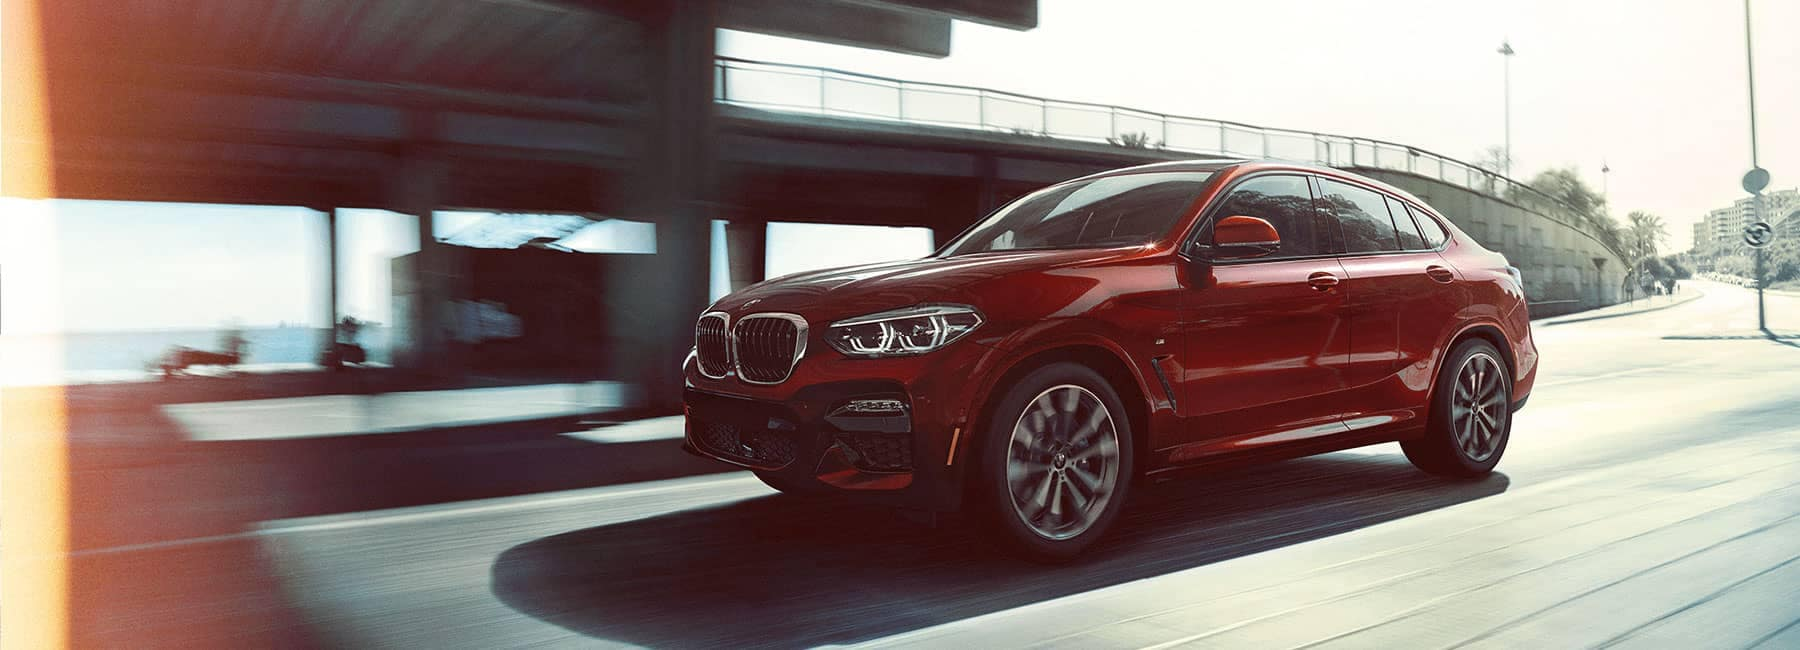 2019-BMW-4-Series-red